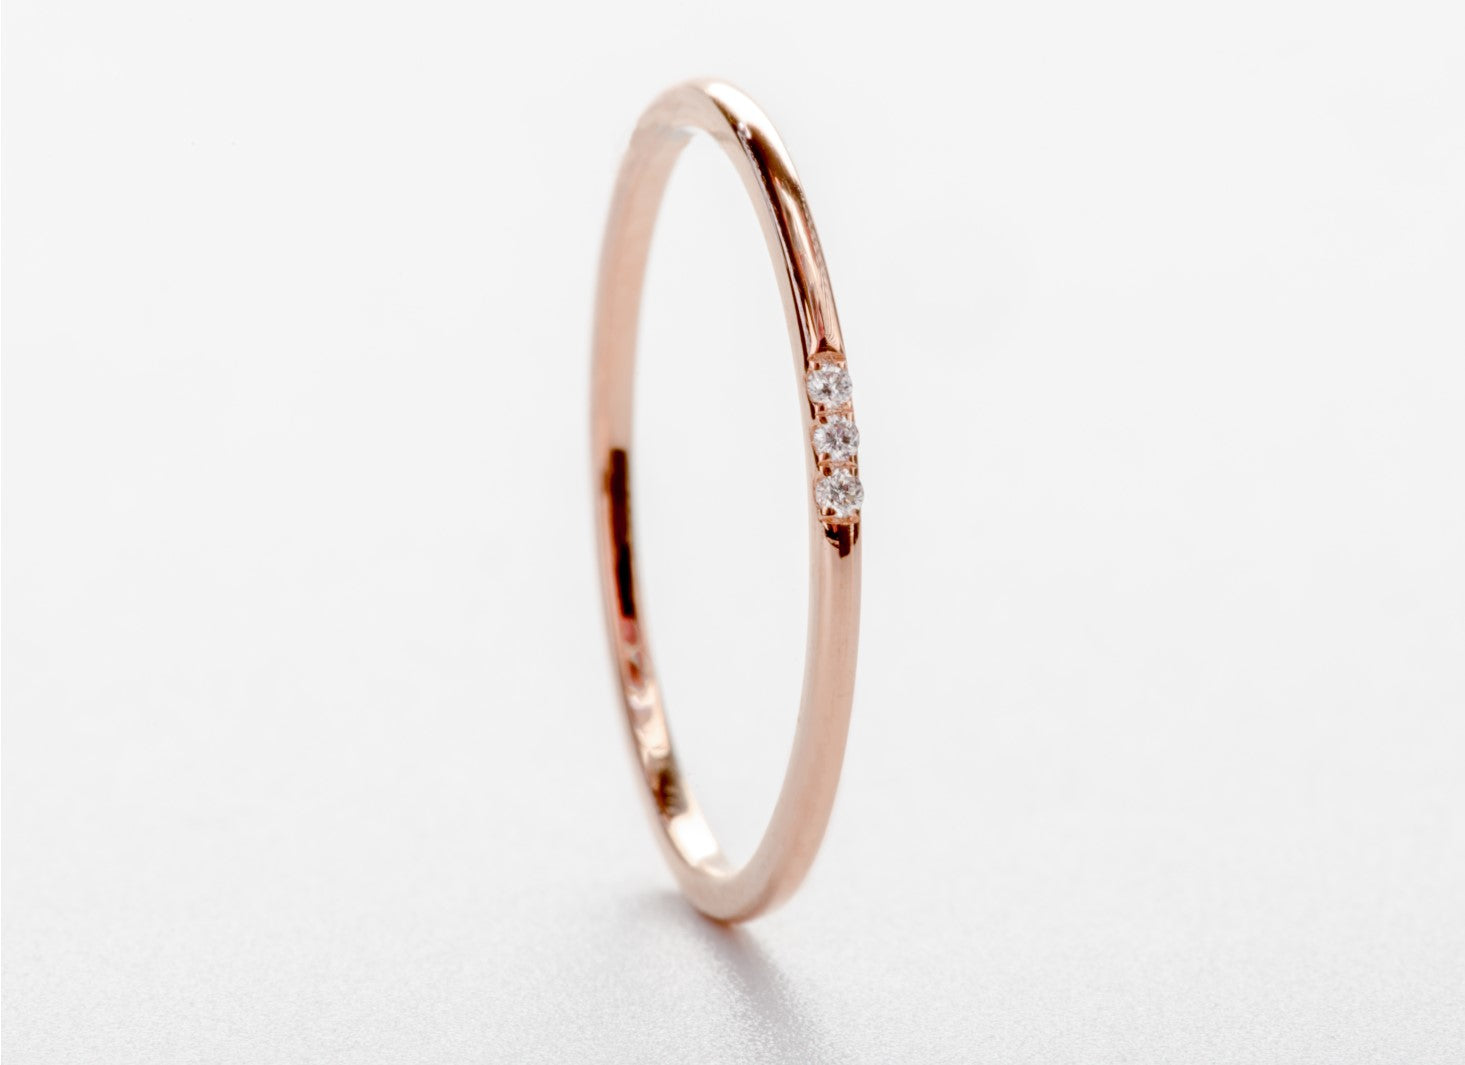 Solid 18ct Rose Gold and 3 Diamond Minimalist Wedding Anniversary Engagement Dress Band Ring Size 5.5 by CTJ